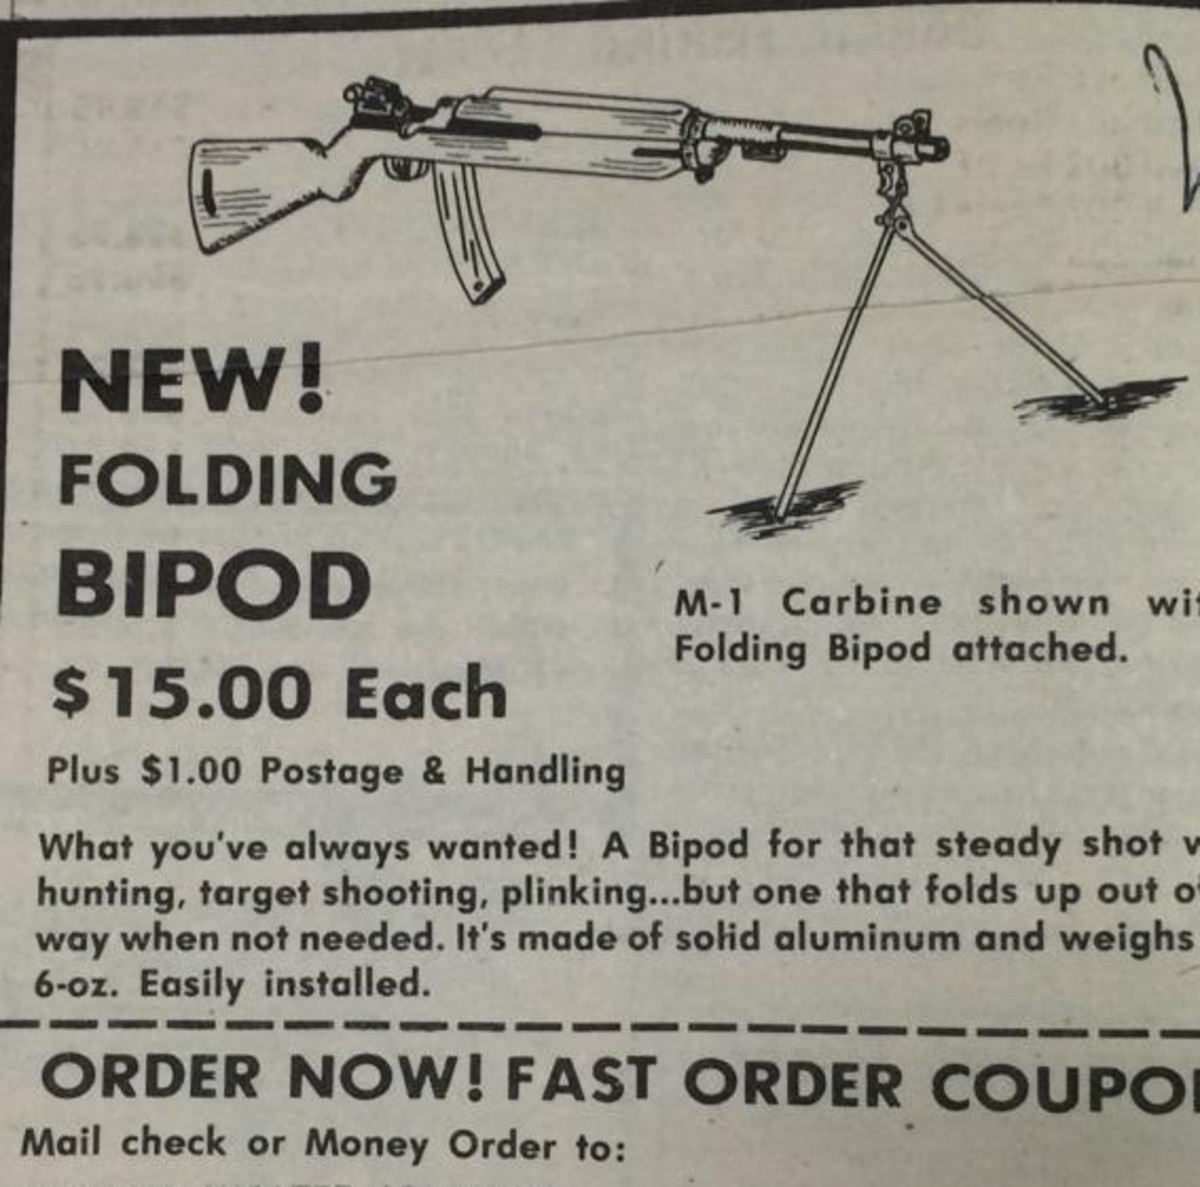 Vintage ad from Shotgun News selling M1 carbine bipods for just $15!